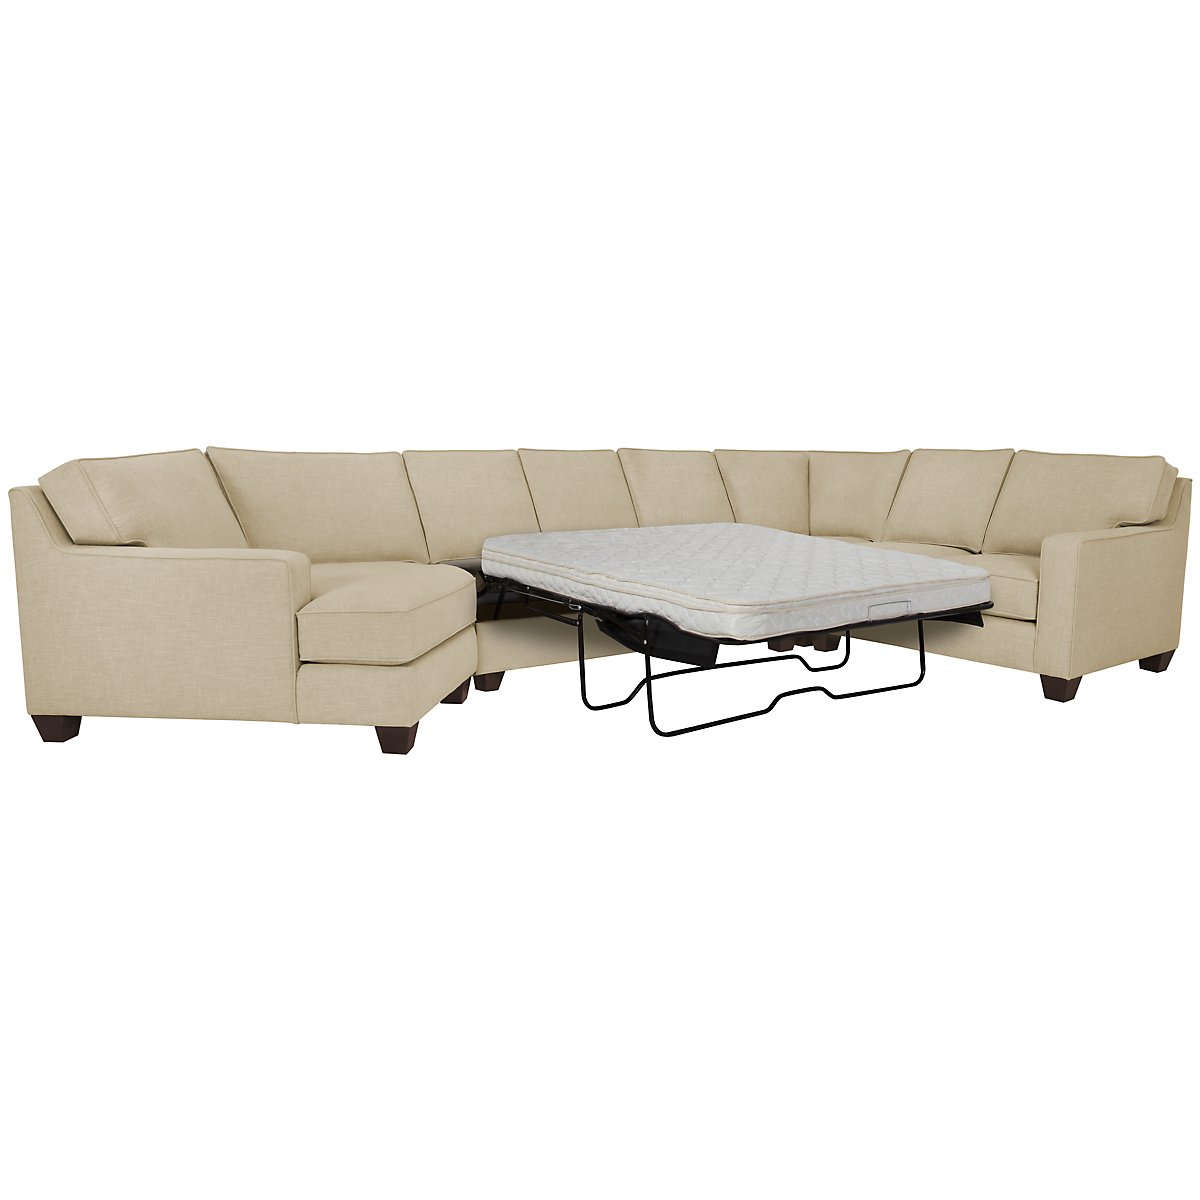 York Beige Fabric Small Left Cuddler Innerspring Sleeper Sectional